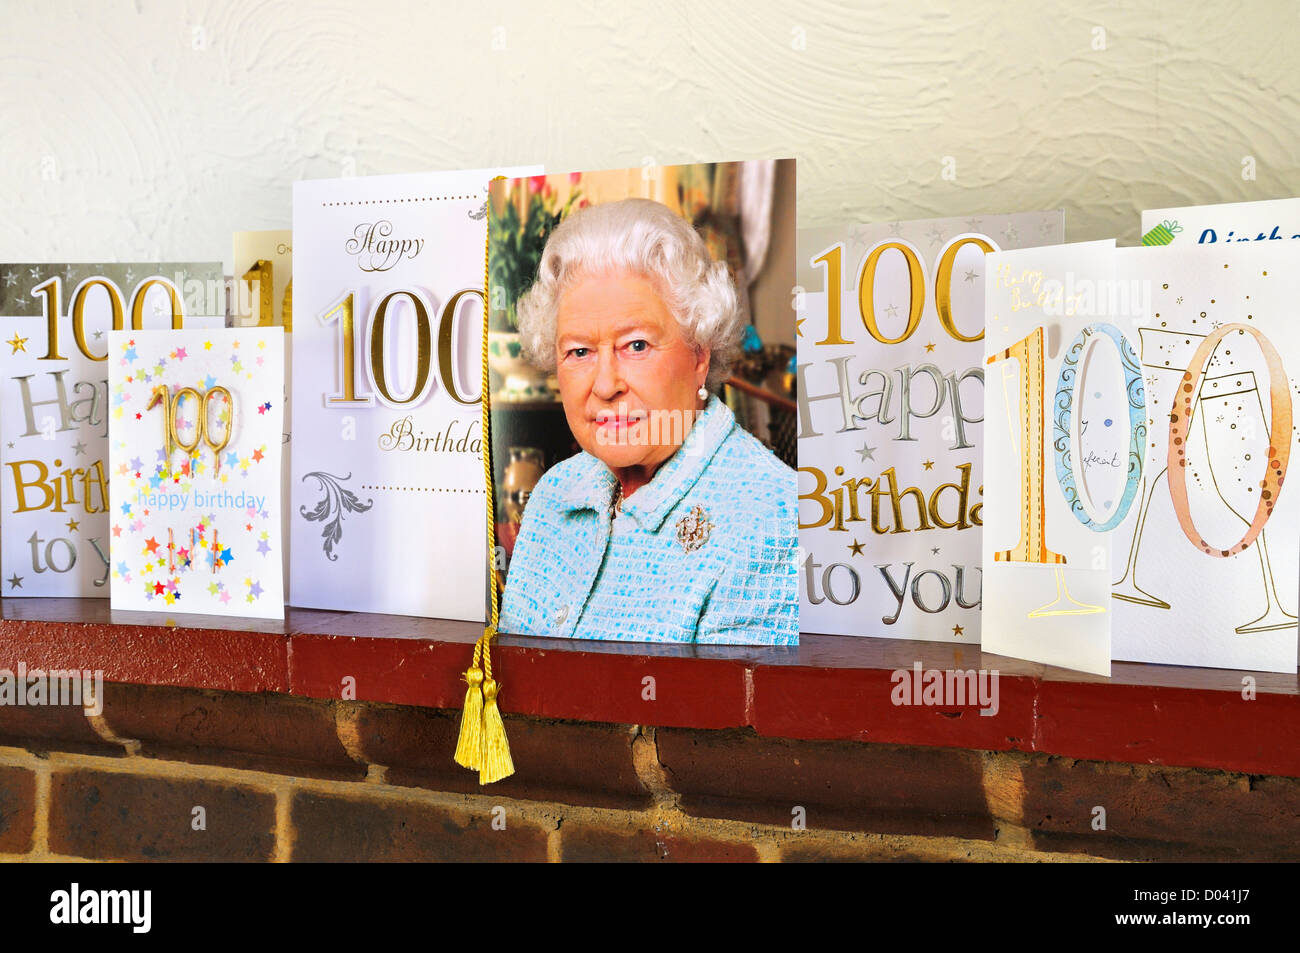 100th birthday cards alongside a personalised card from her majesty queen elizabeth ii on a mantelpiece